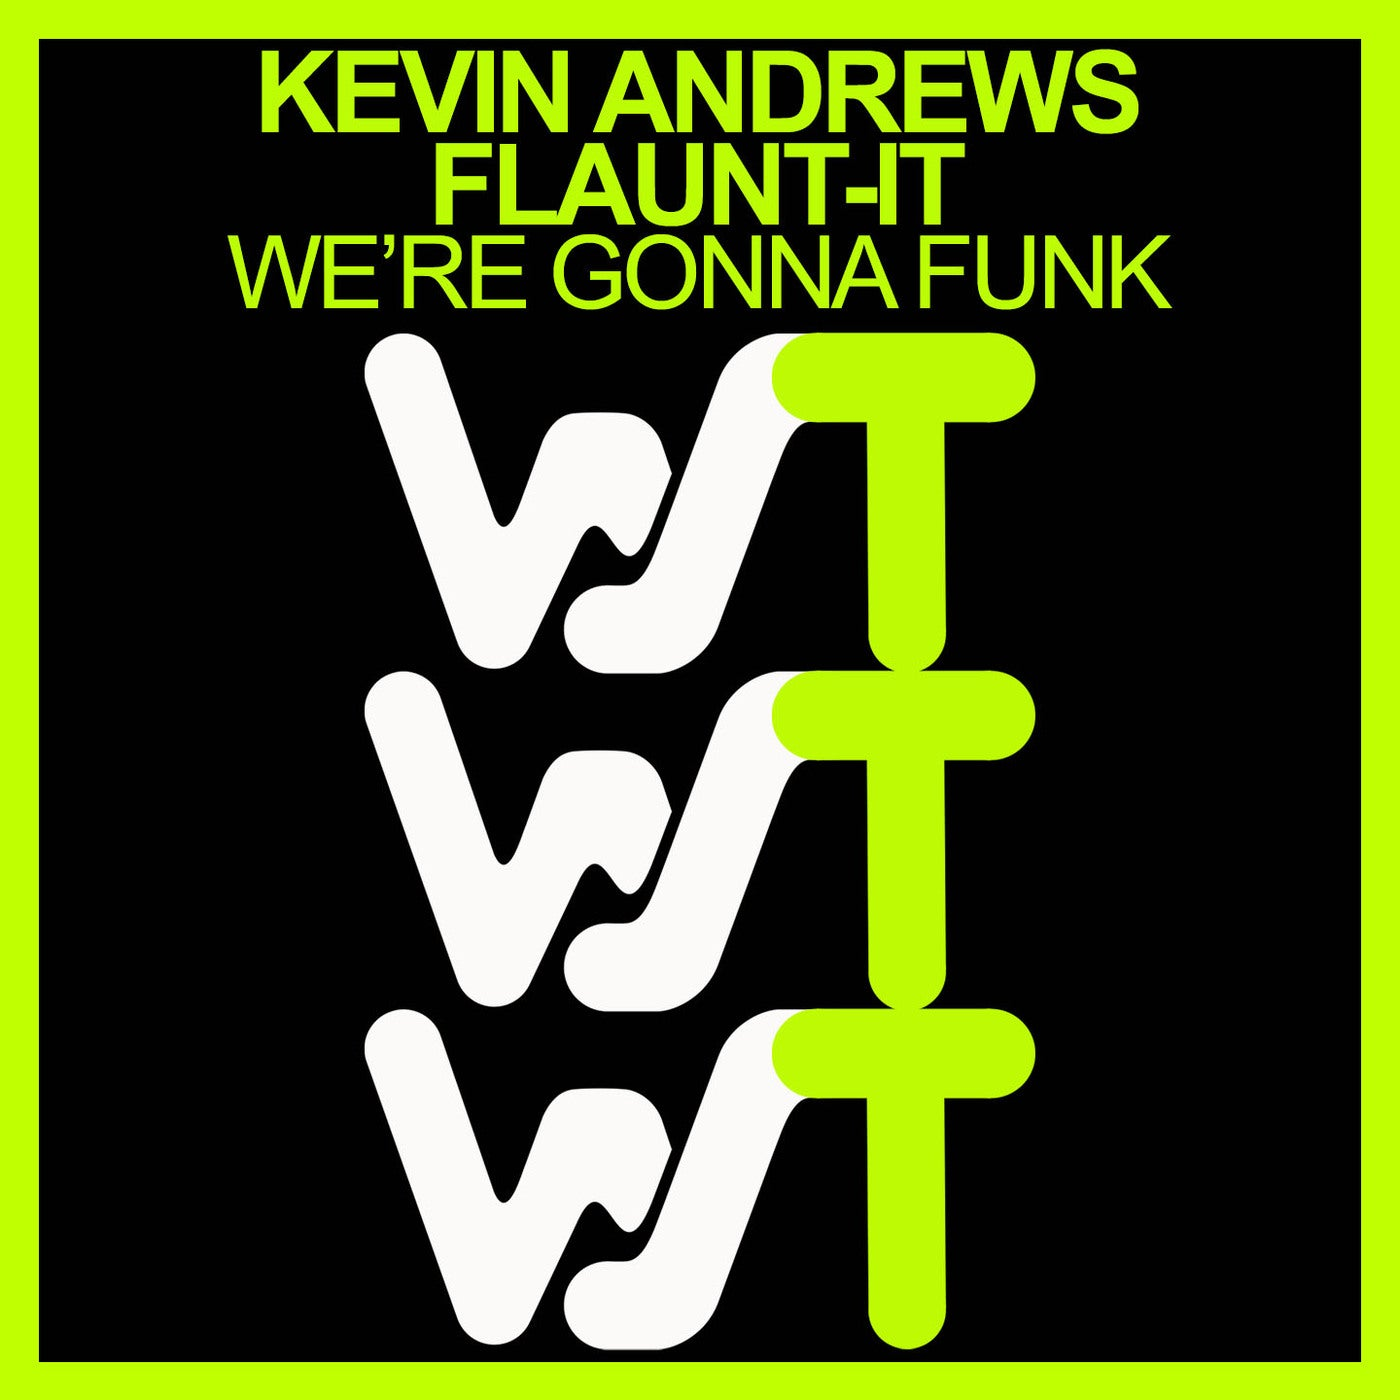 Kevin Andrews, Flaunt-It - We're Gonna Funk (Original Mix)